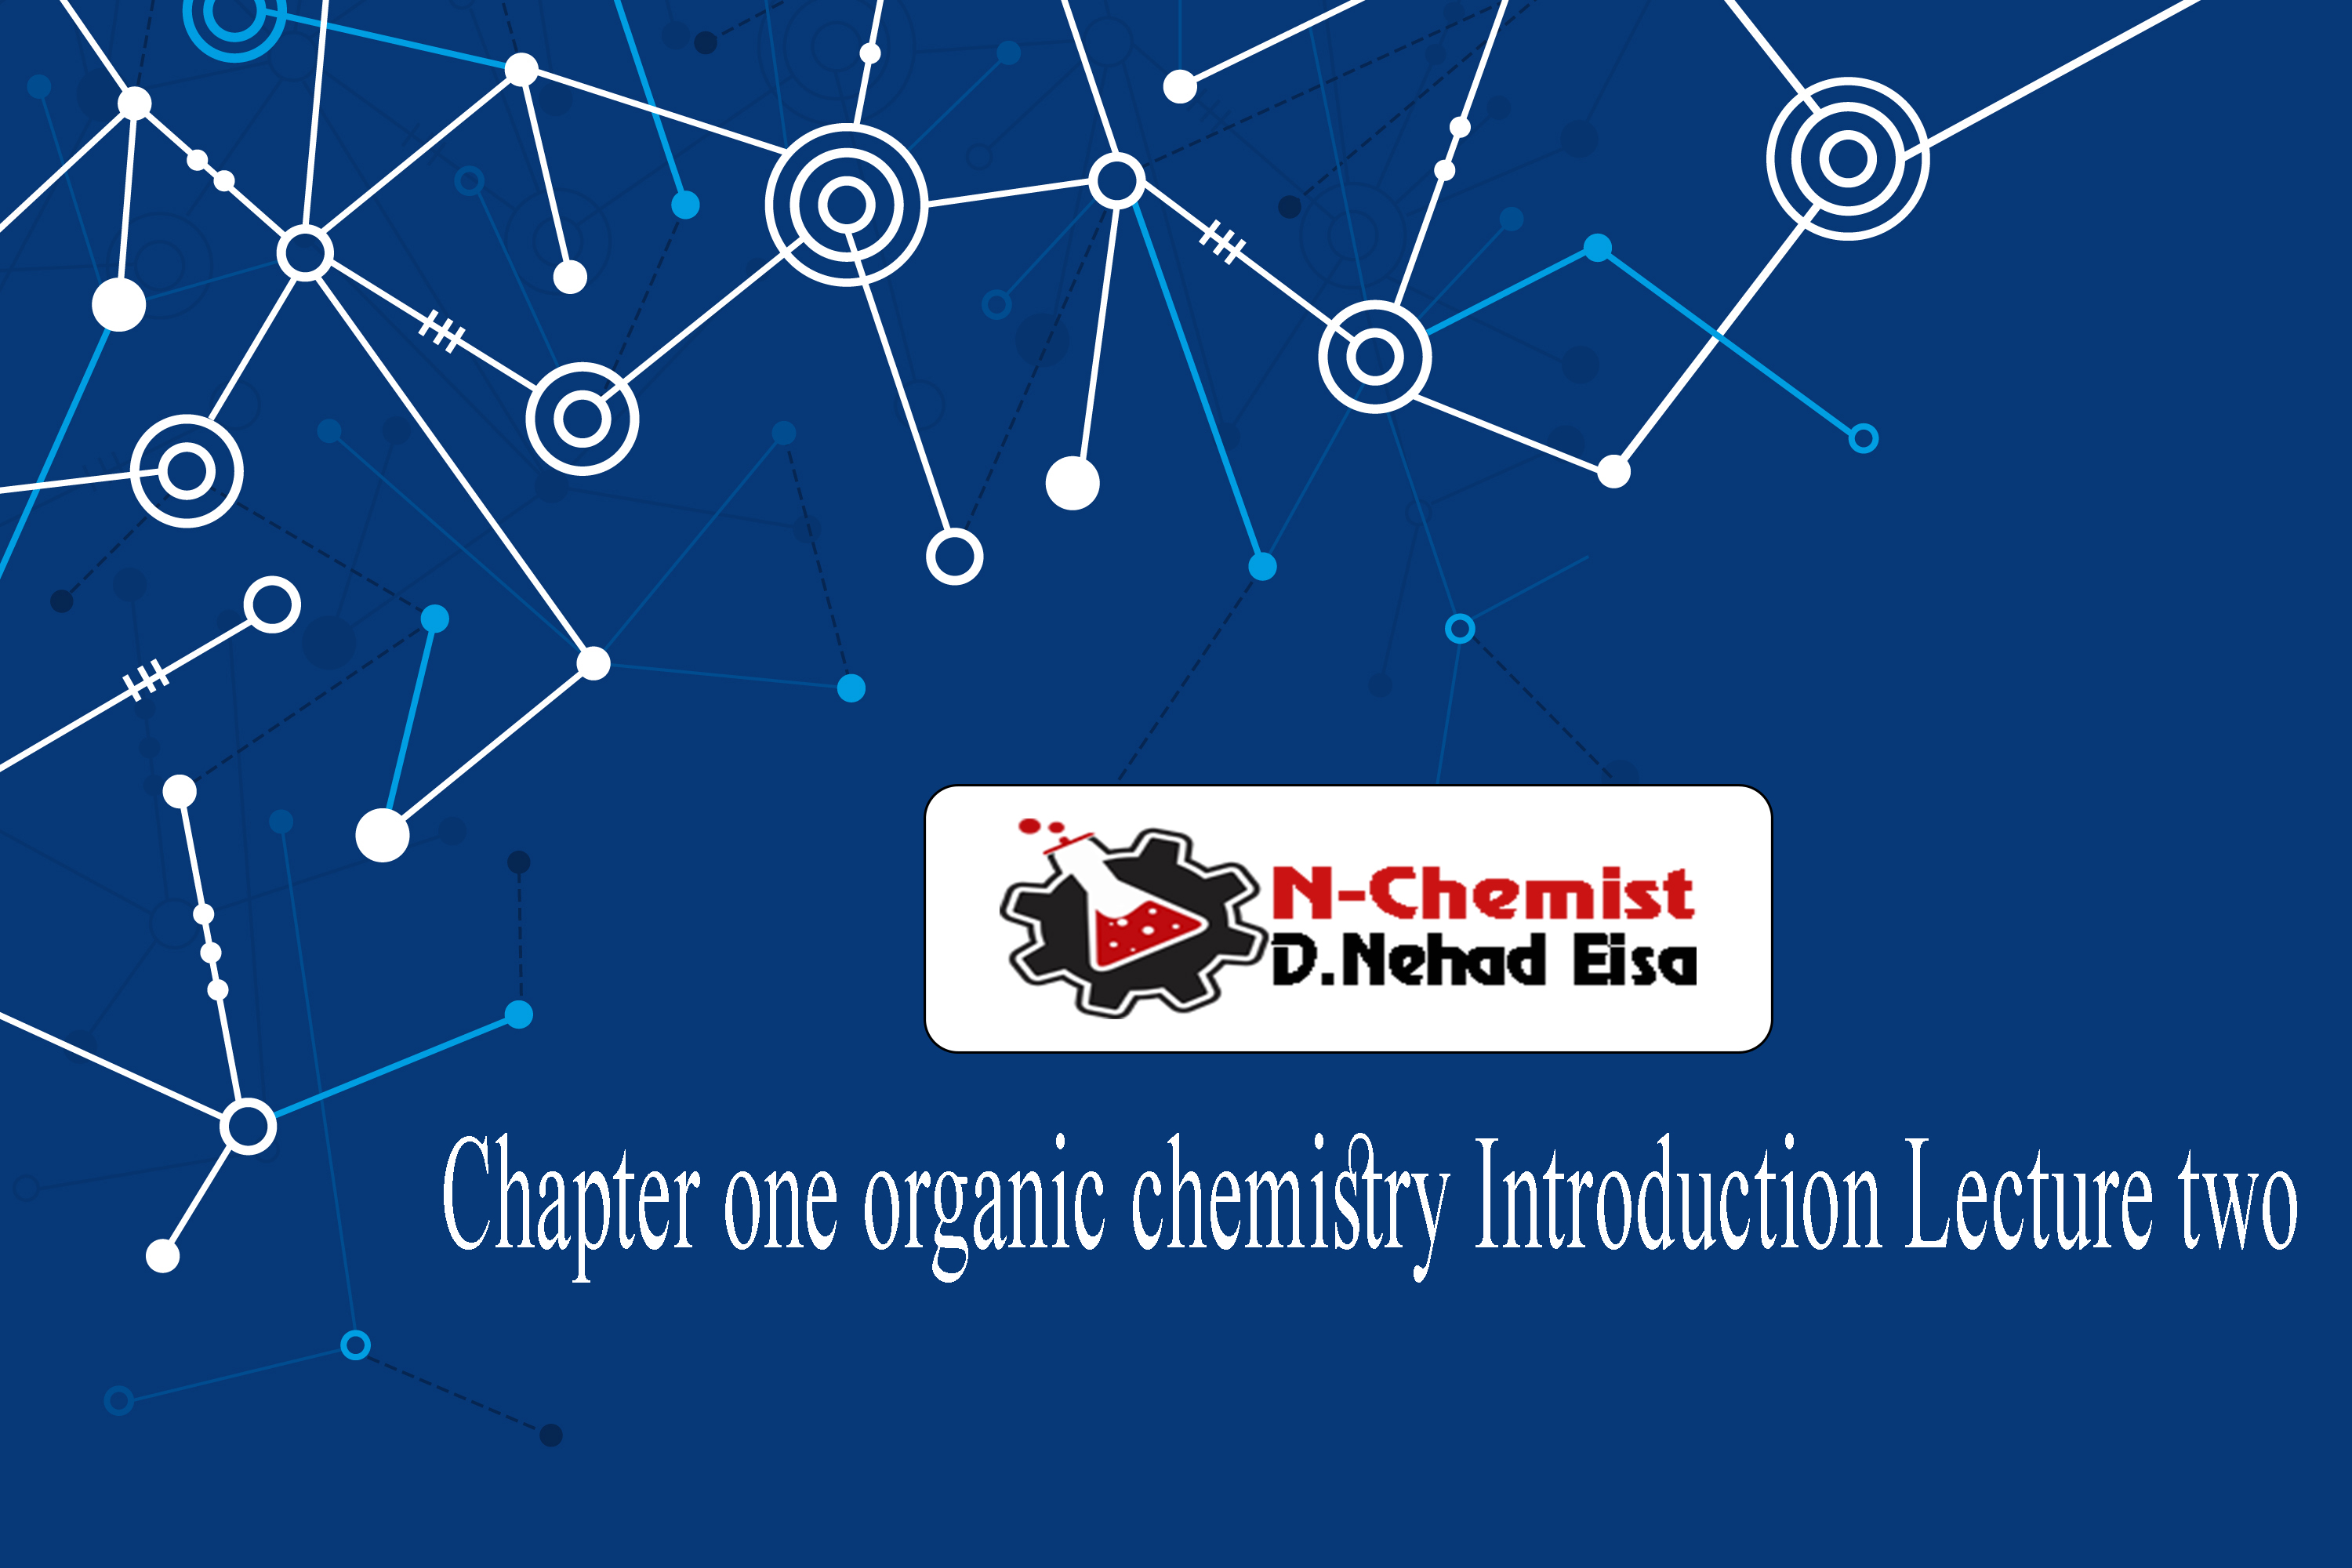 Chapter one organic chemistry Introduction Lecture two